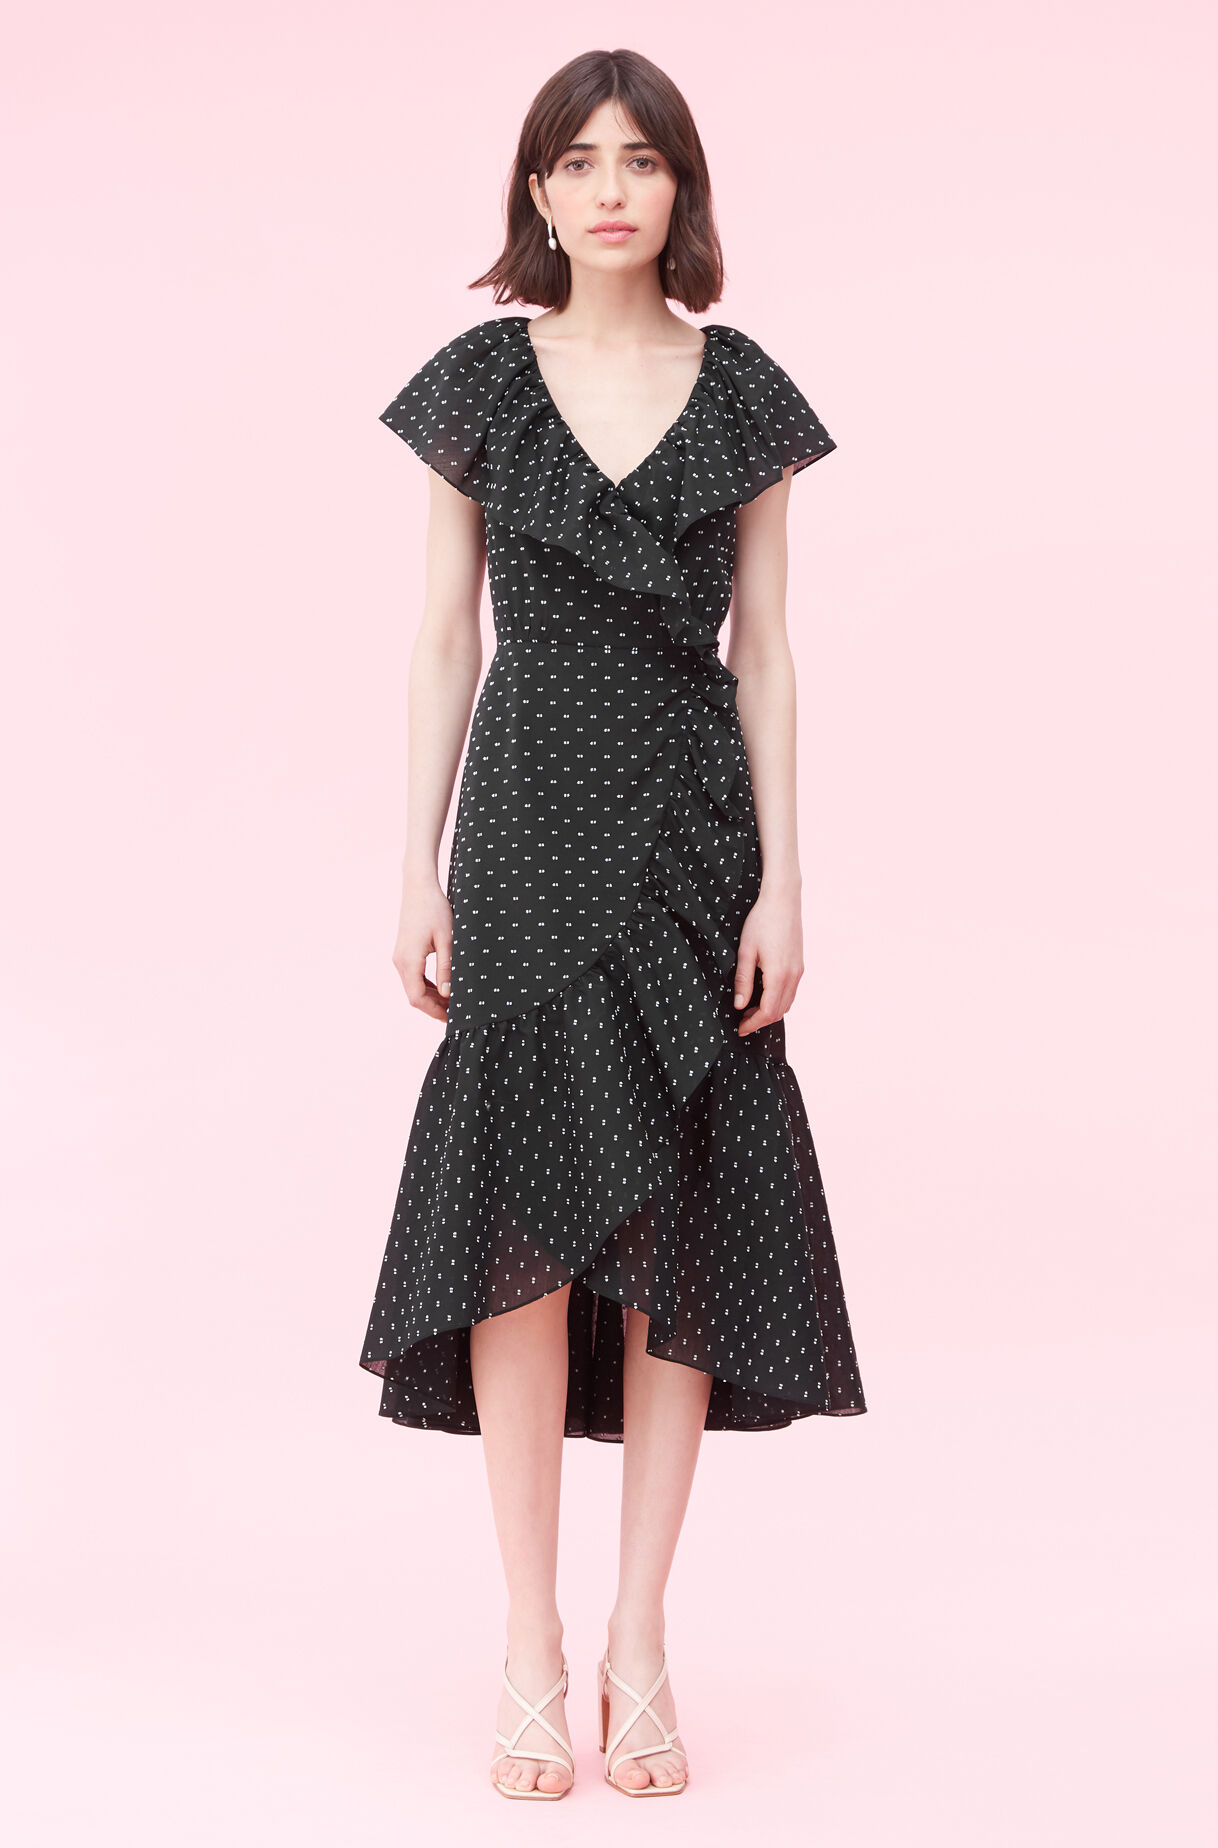 Birdseye Dot Clip Wrap Dress, , large